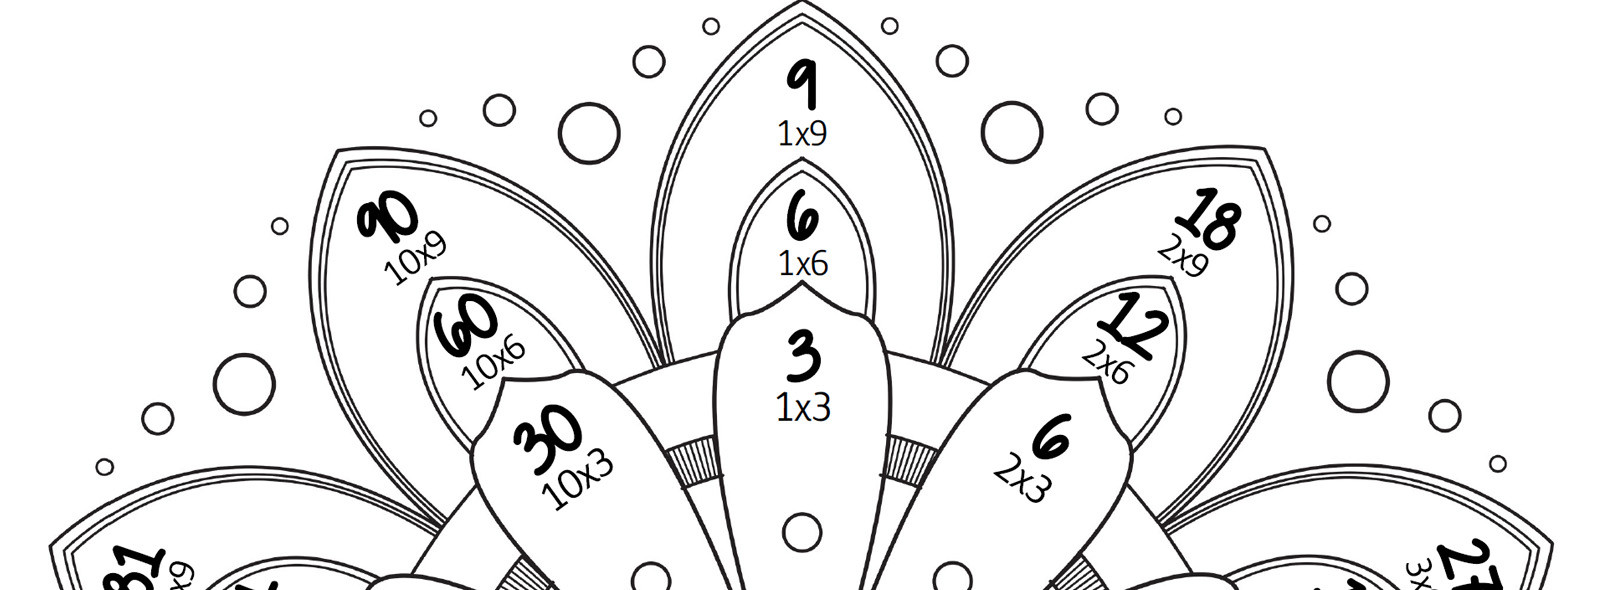 Mandala des tables de multiplication par 2, 4 et 8 - Facebook